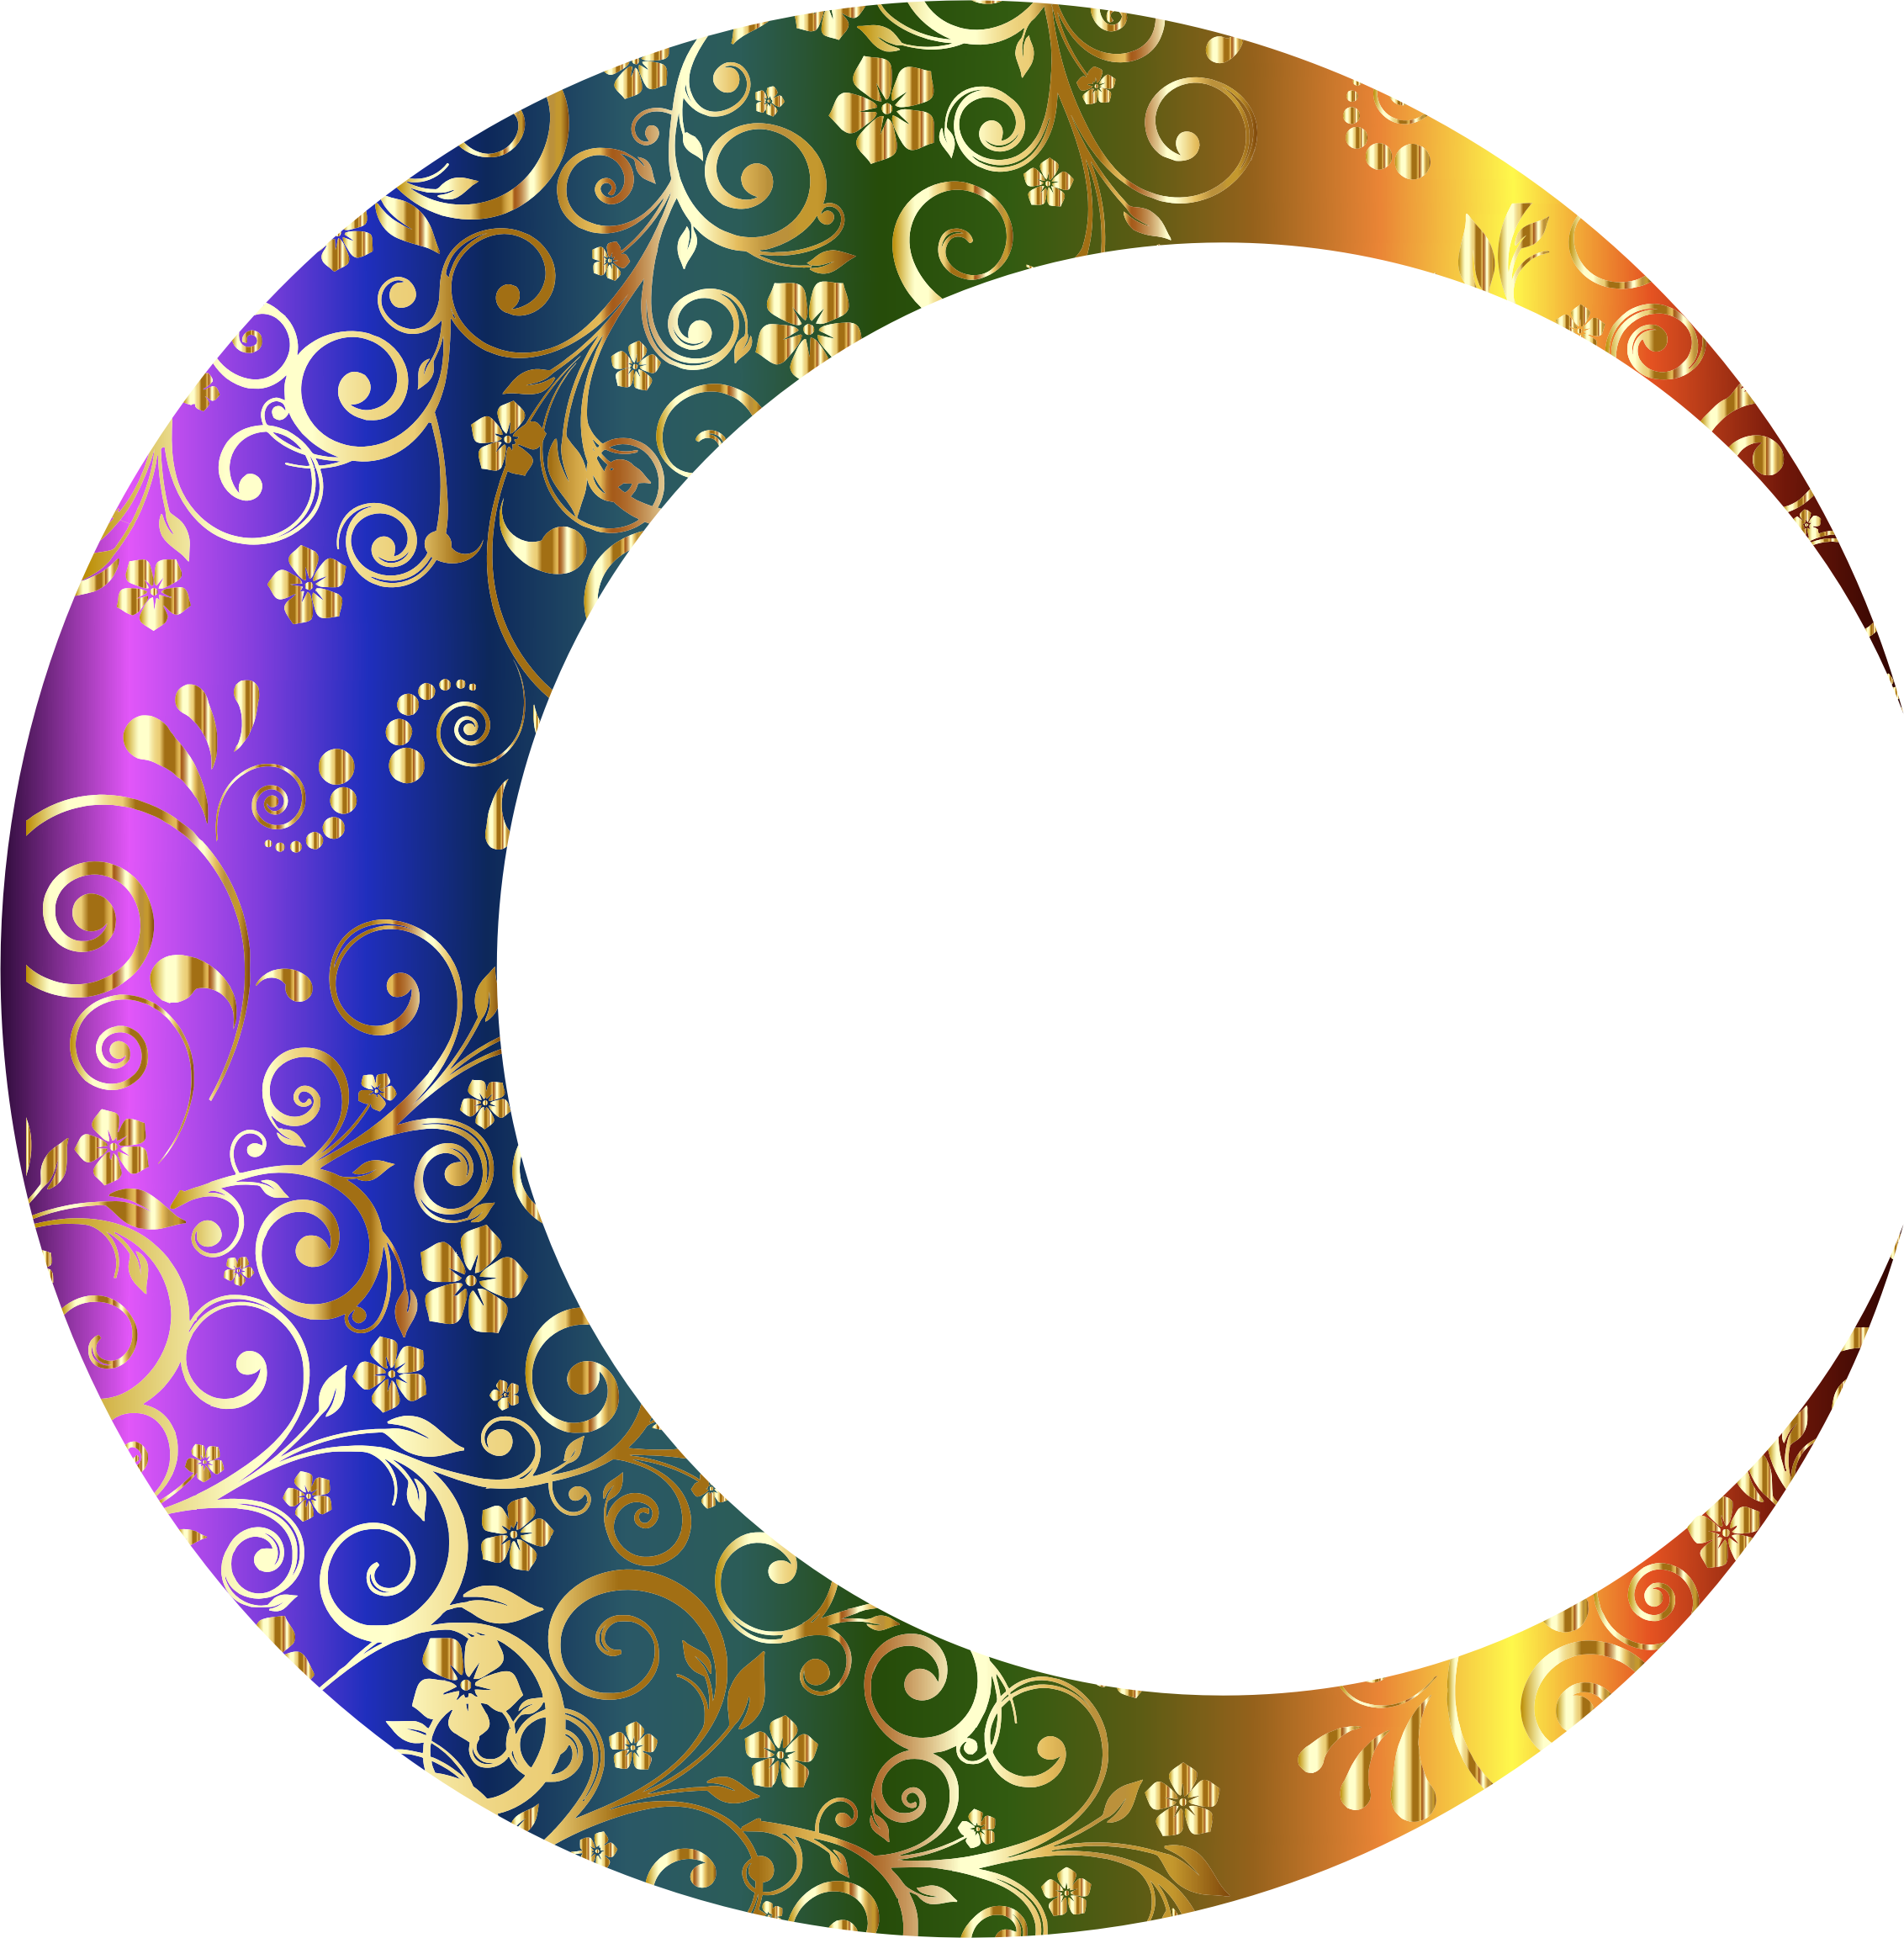 Live by the sun love by the moon clipart graphic royalty free download Image result for moon images | Sun Moon Stars | Pinterest | Moon images graphic royalty free download